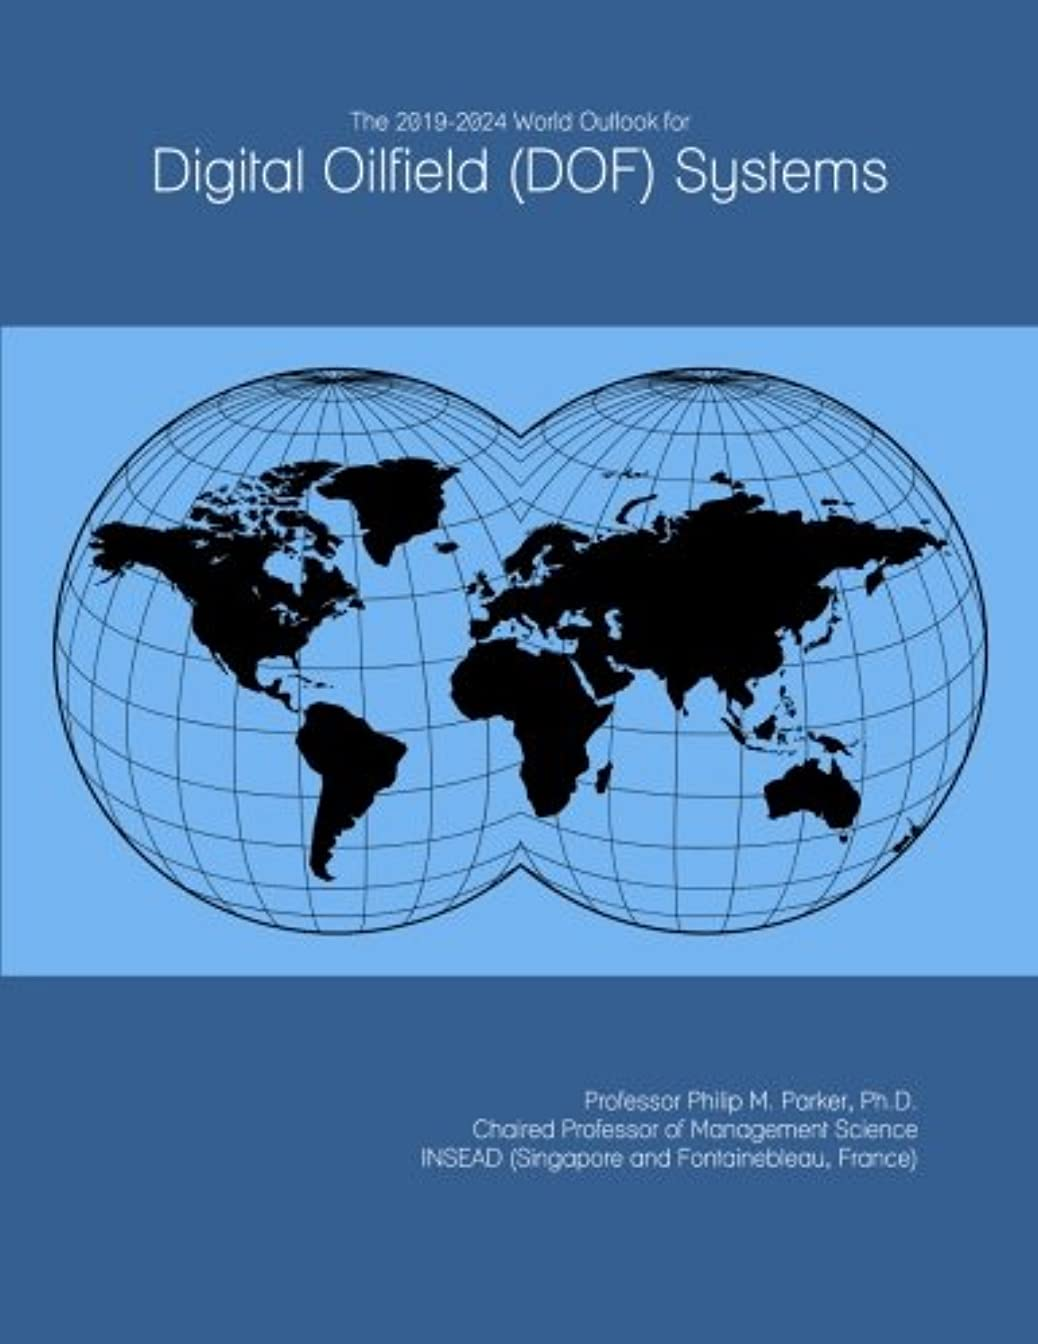 破壊抵抗バケットThe 2019-2024 World Outlook for Digital Oilfield (DOF) Systems